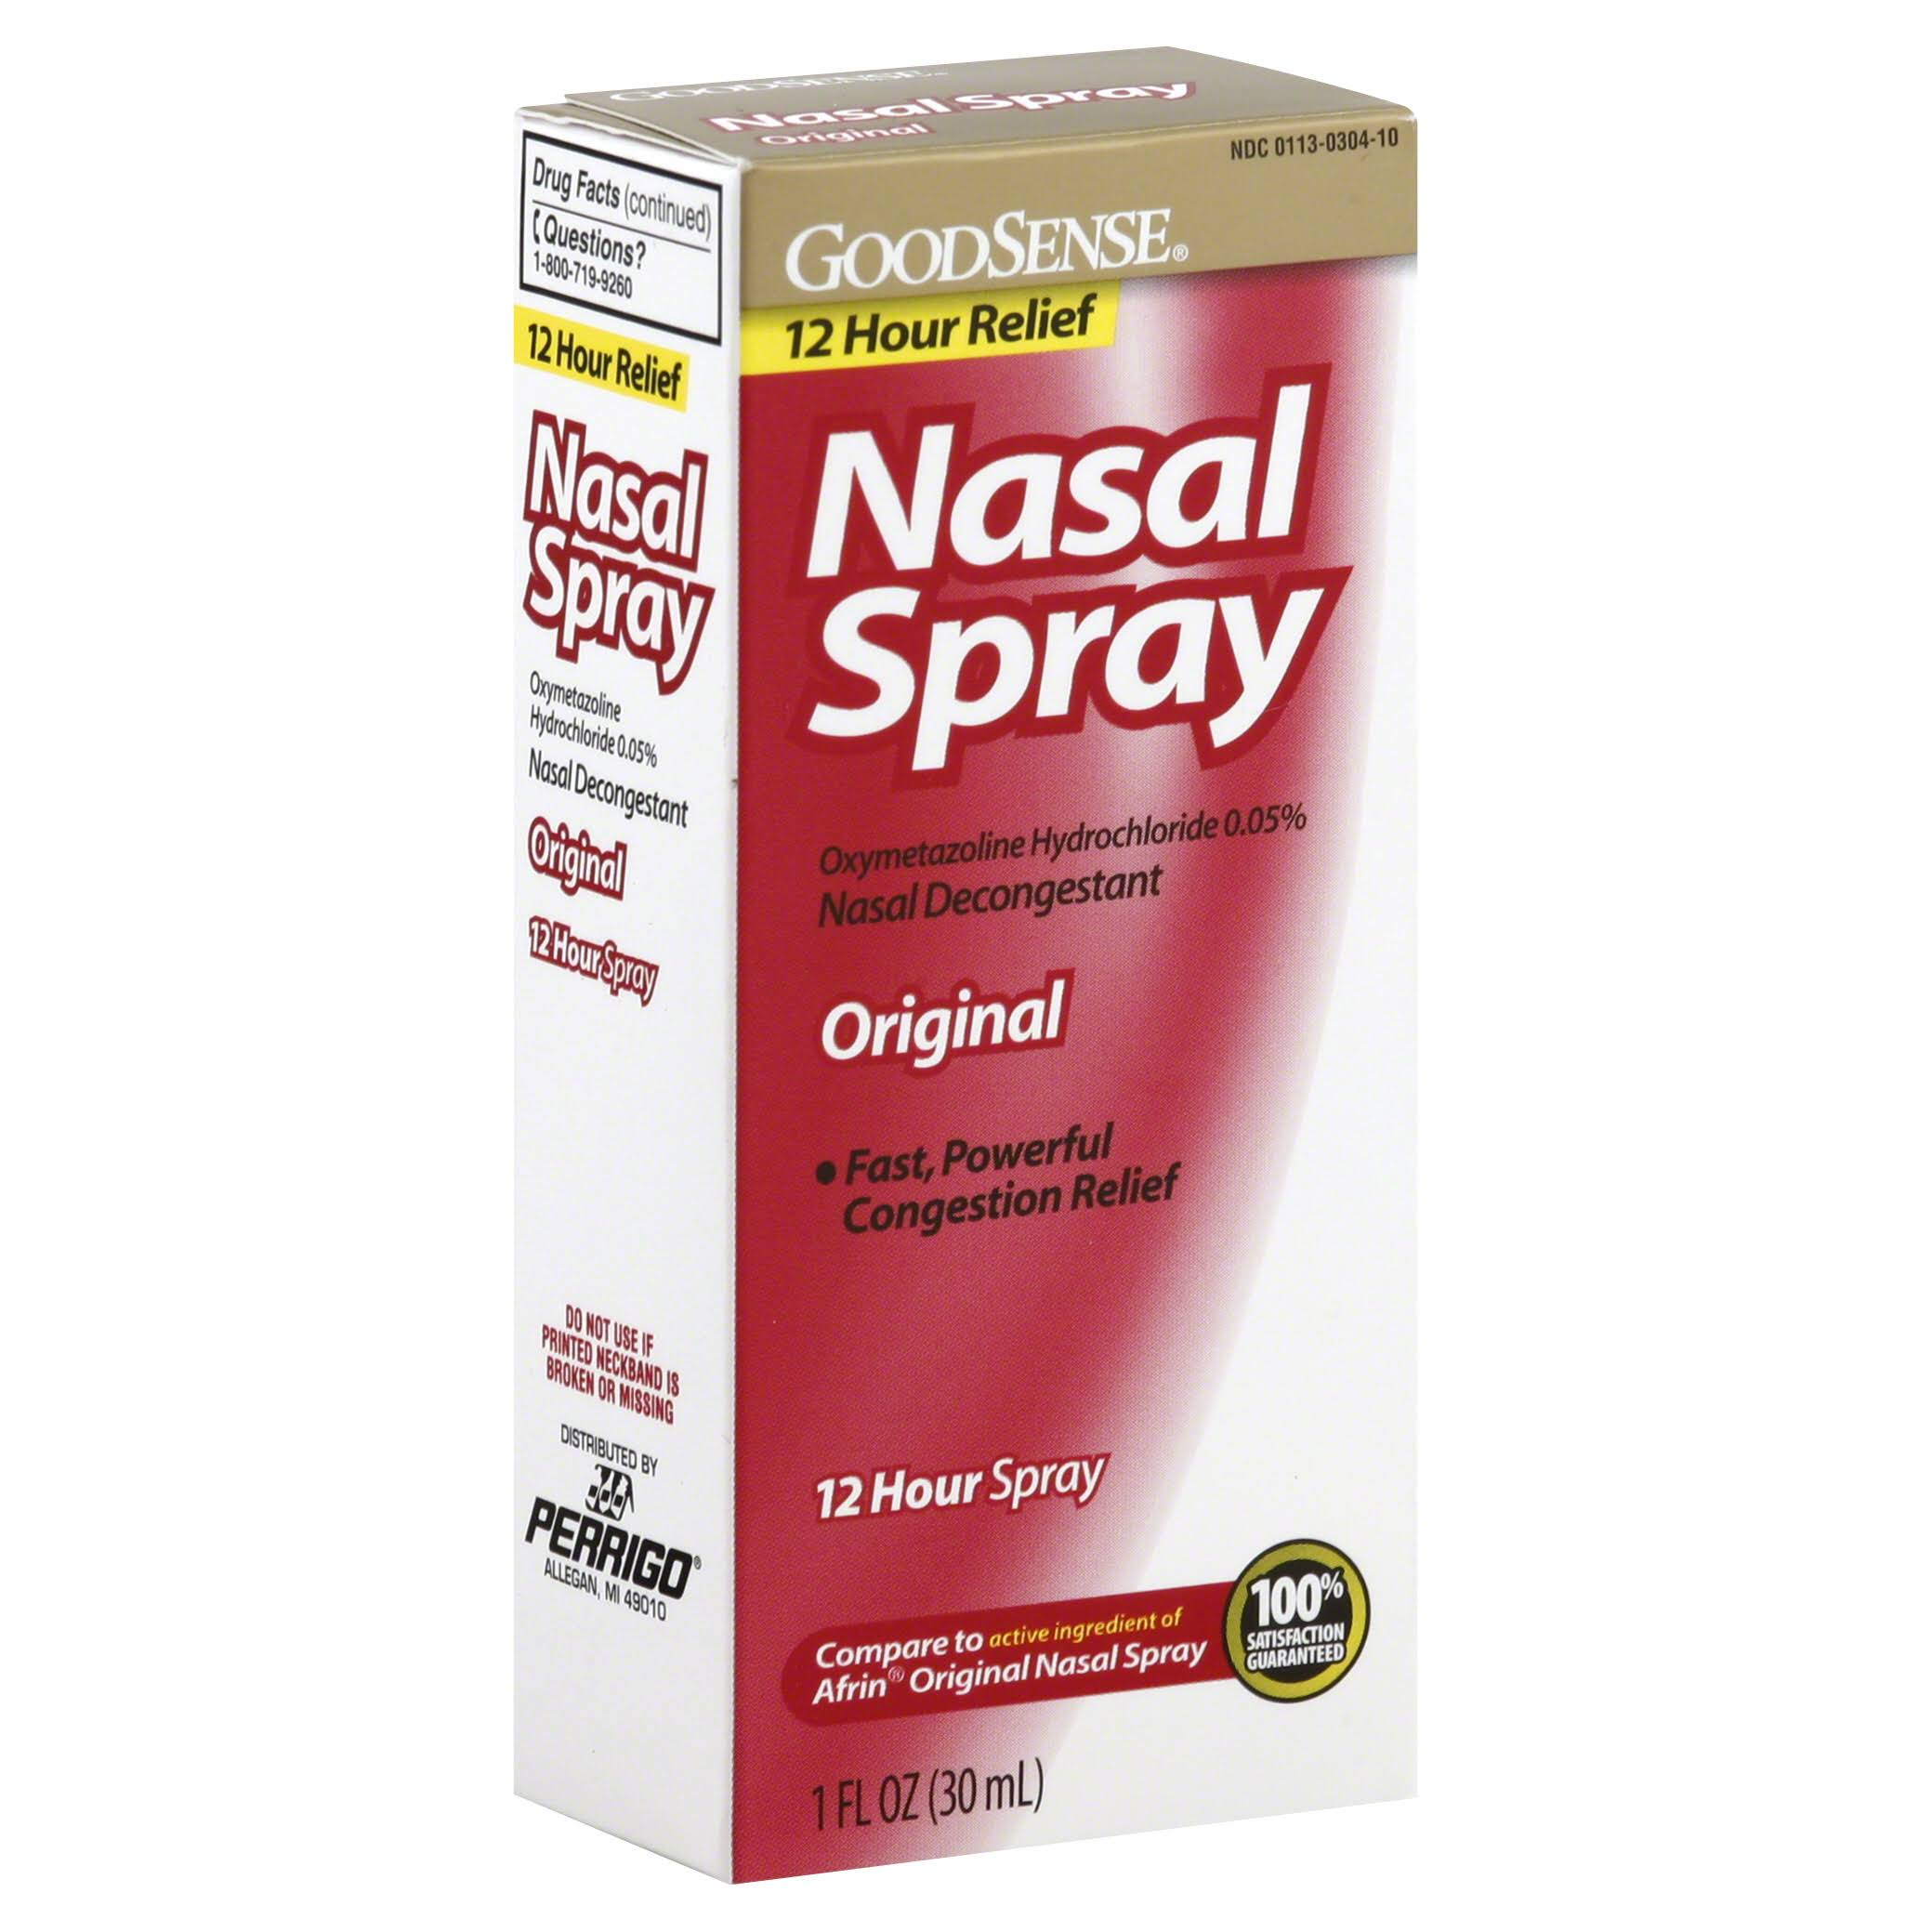 GoodSense Nasal Spray, Original - 1 fl oz